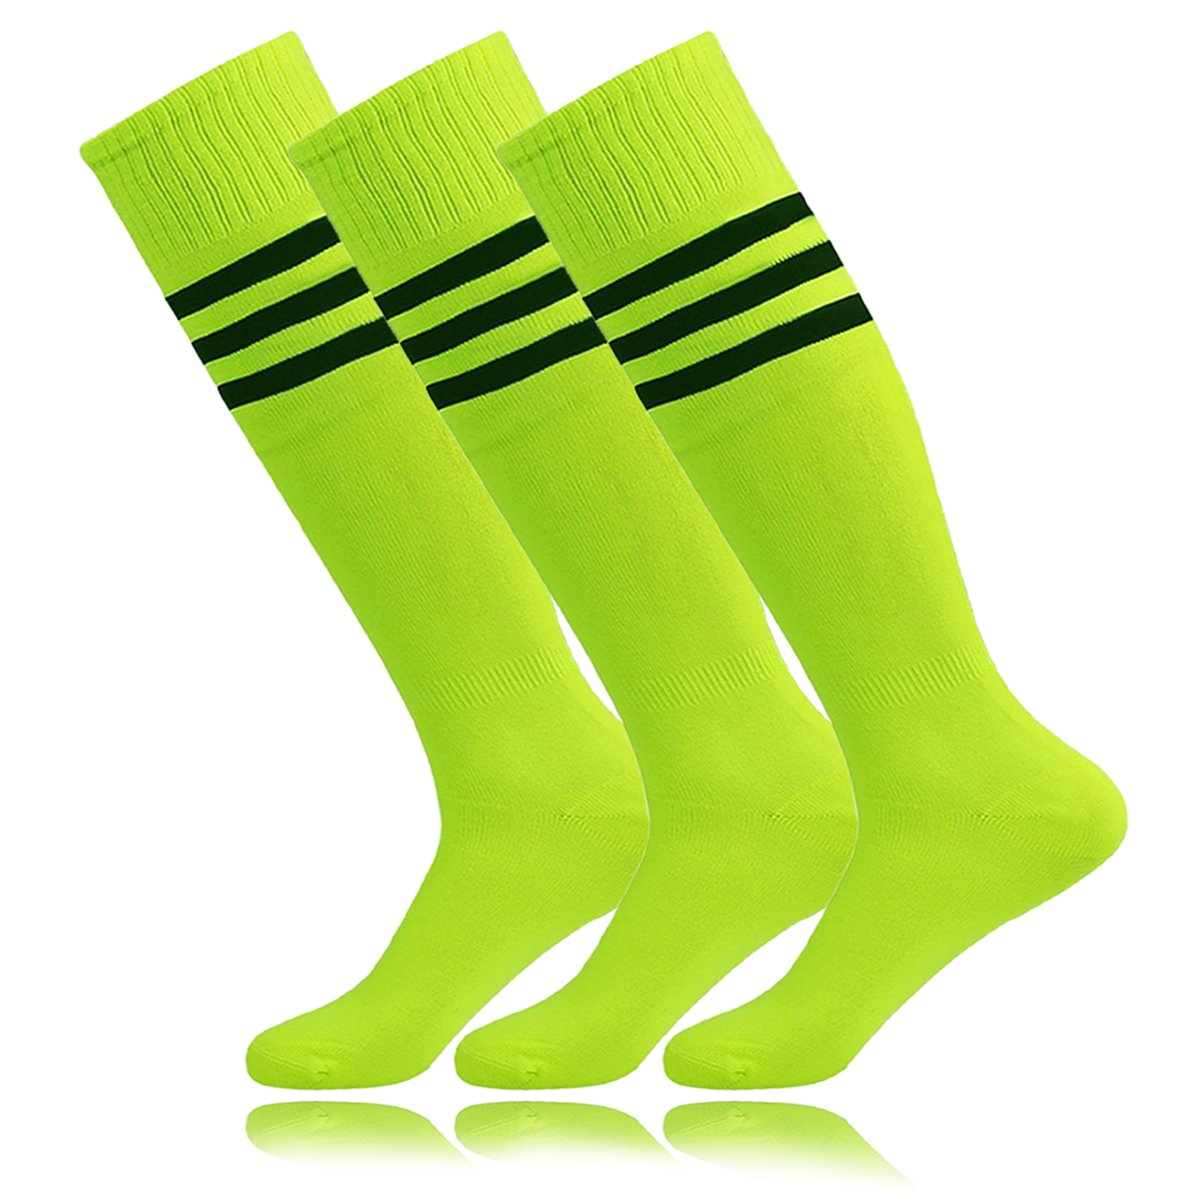 Unisex Tube Dresses Athletic Hockey Tube Soccer Socks Neon Yellow for High School Students El lunes en la red Porristas Baile April Fool's Day (3Pairs-Fluorescence Green) by MOAIR